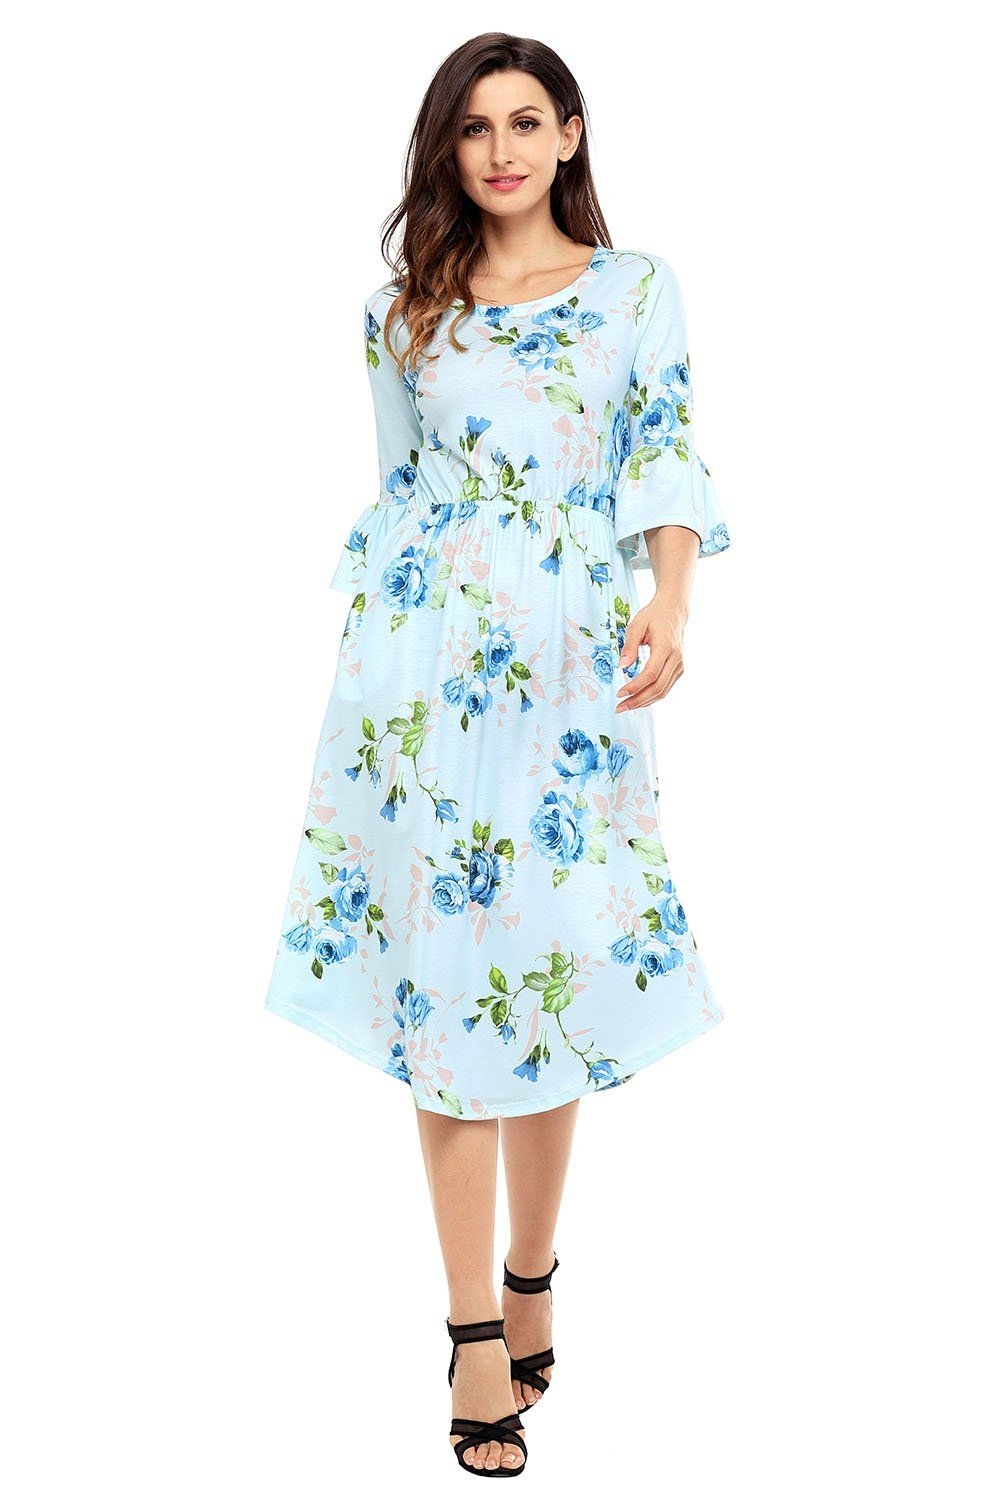 b03fd5d51ad Light Blue 3/4 Bell Sleeve Floral Midi Dress in 2019 | Products ...